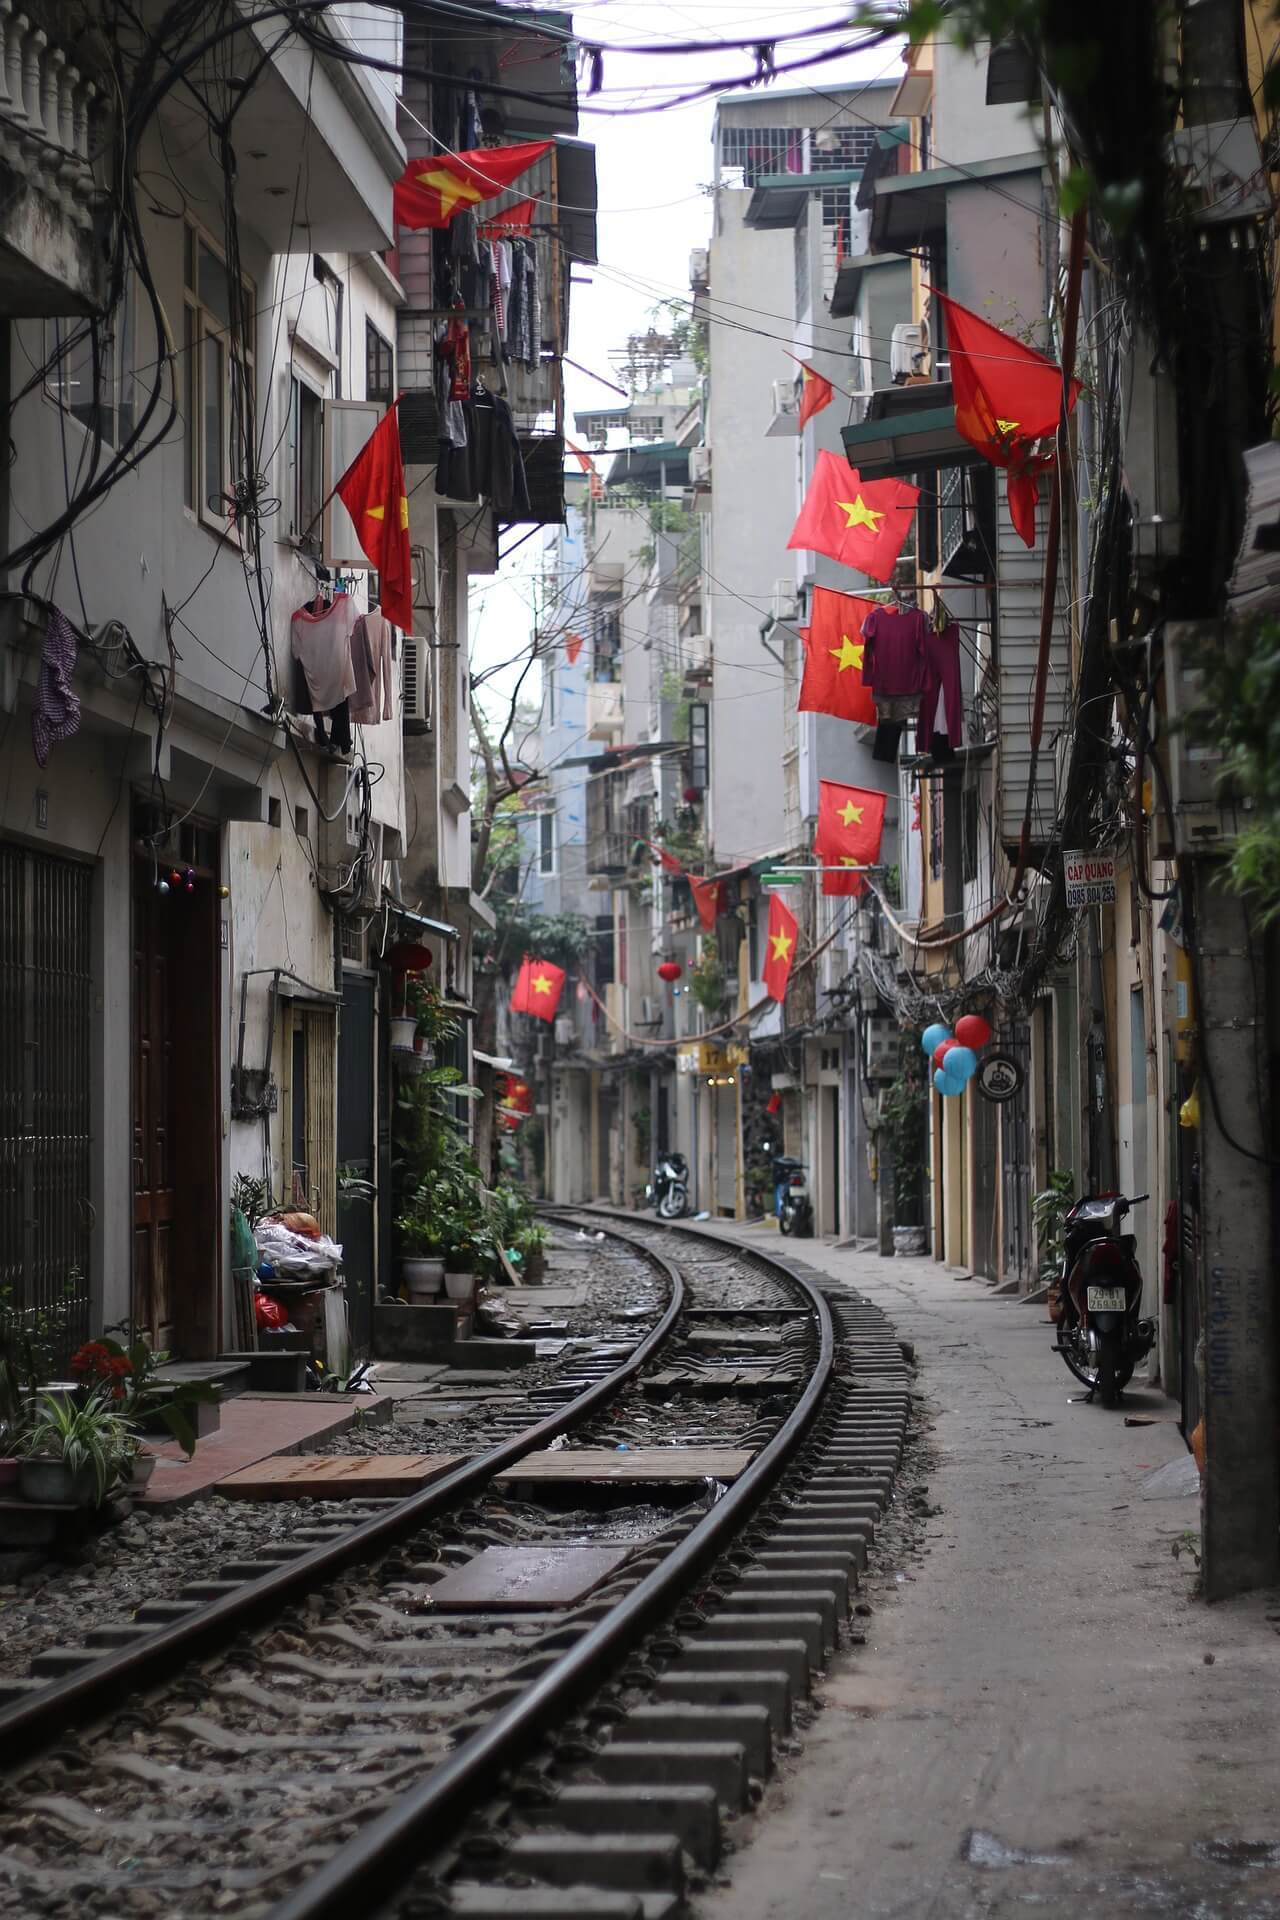 Train Street, Hanoi